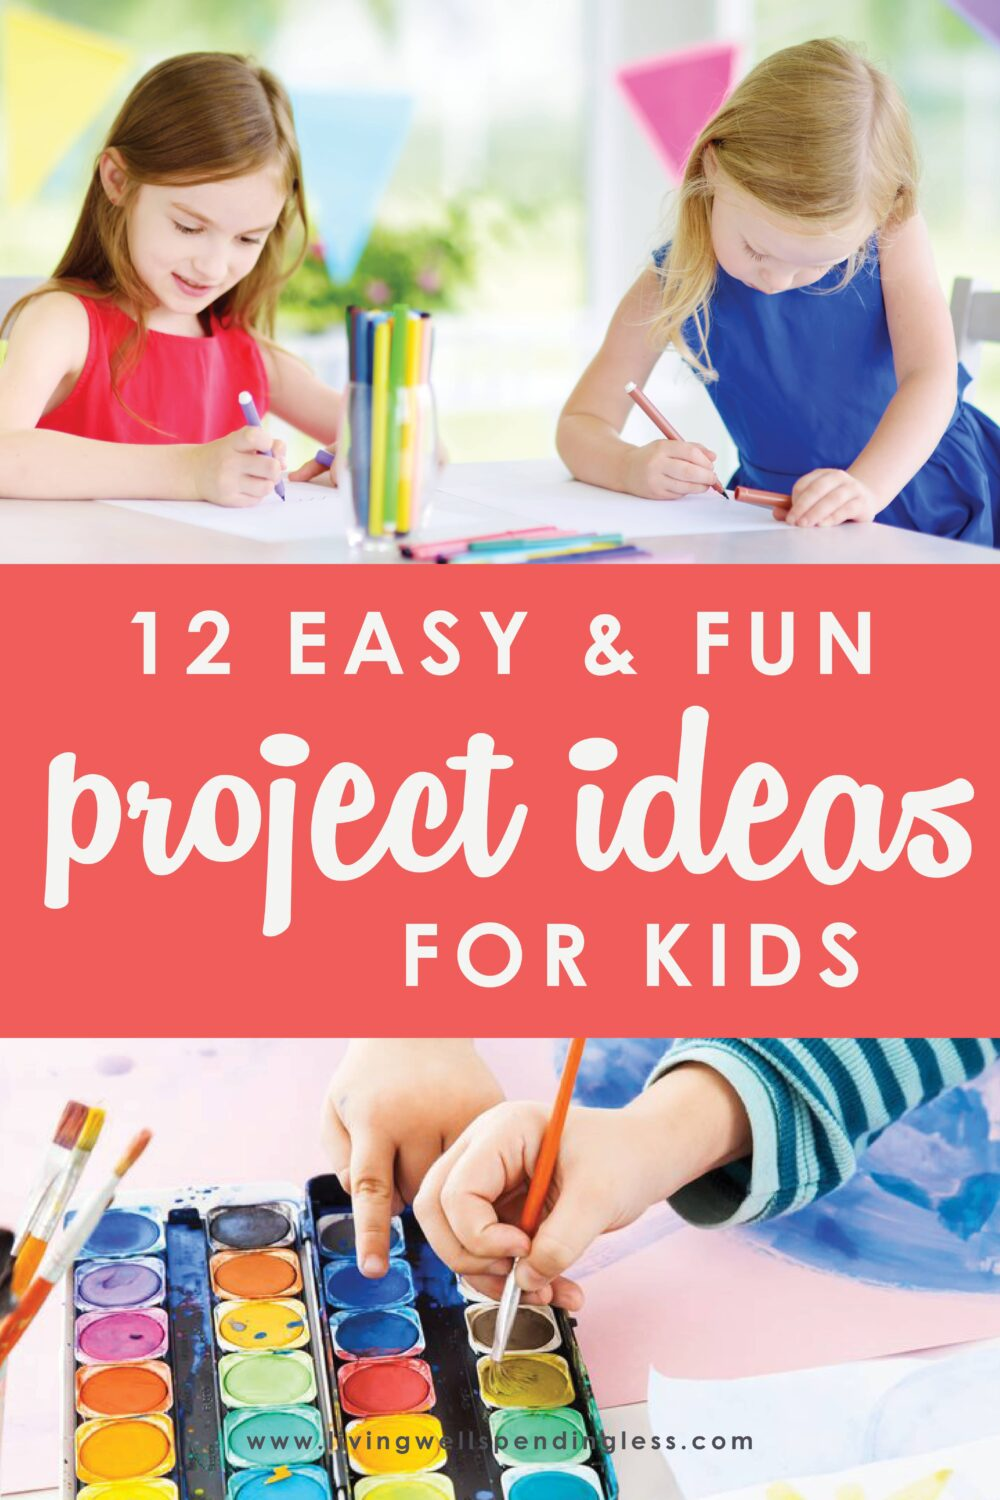 Trying to figure out how to keep your kids from watching tv all day? Check out these 12 tried and tested easy and fun projects to do with the kids during this time of social distancing and self-imposed quarantines. Get the whole family involved! #craftsforkids #crafts #DIY #kidscrafts #socialdistancing #coronavirus #covid19